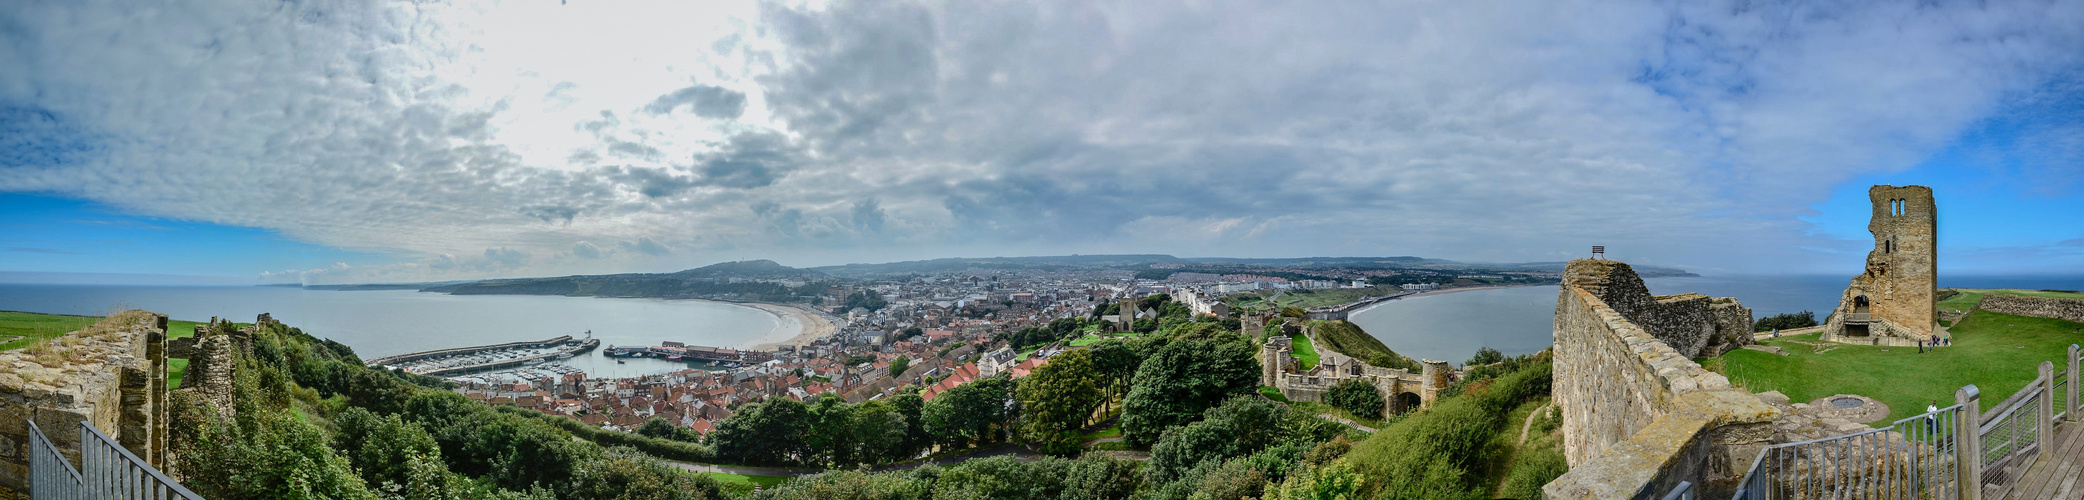 Scarborough Bay, Panorama overlooking the Castle